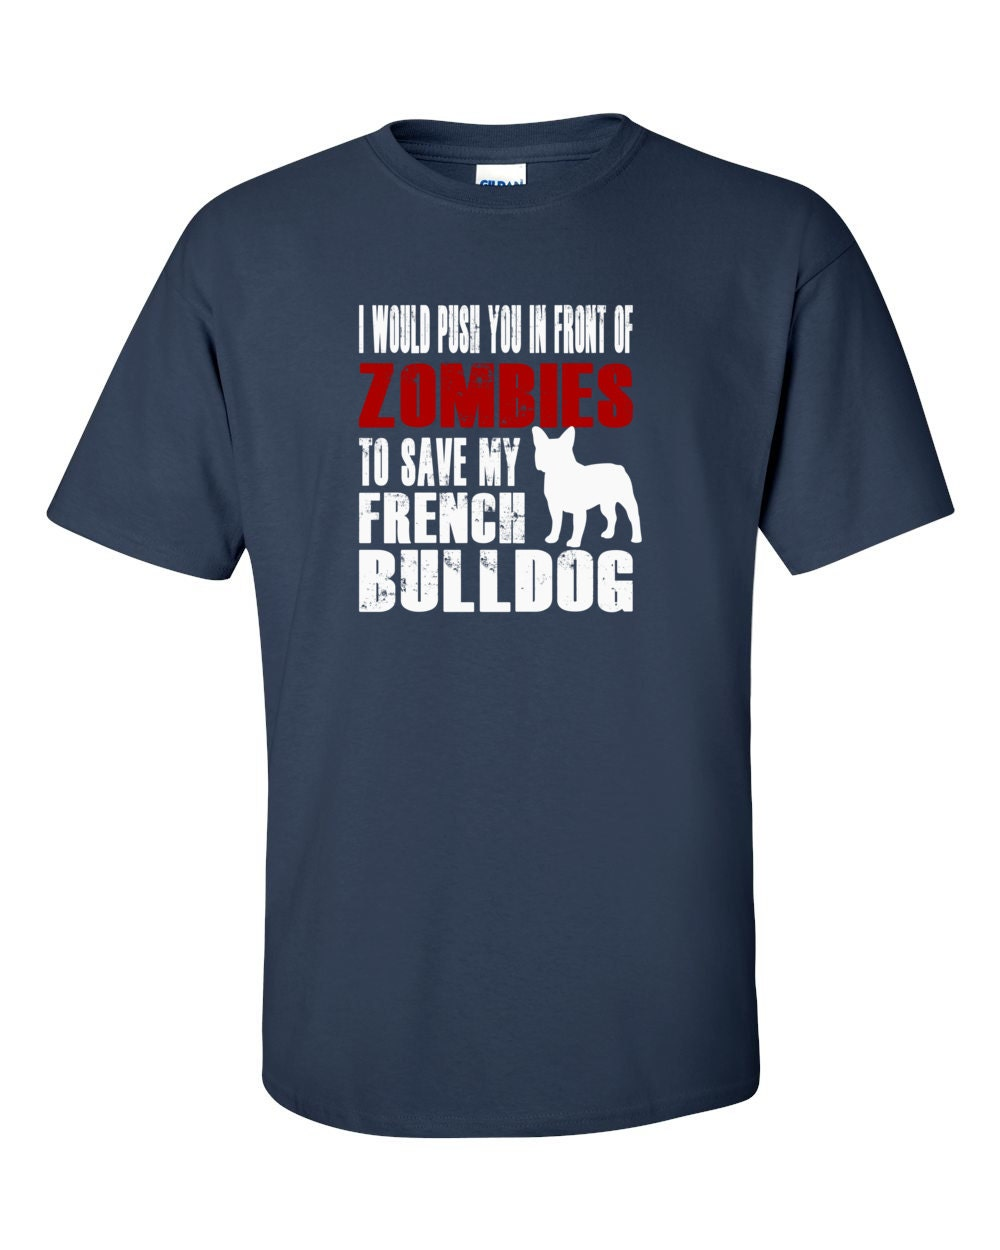 French Bulldog T-shirt - I Would Push You In Front Of Zombies To Save My French Bulldog - My Dog French Bulldog T-shirt